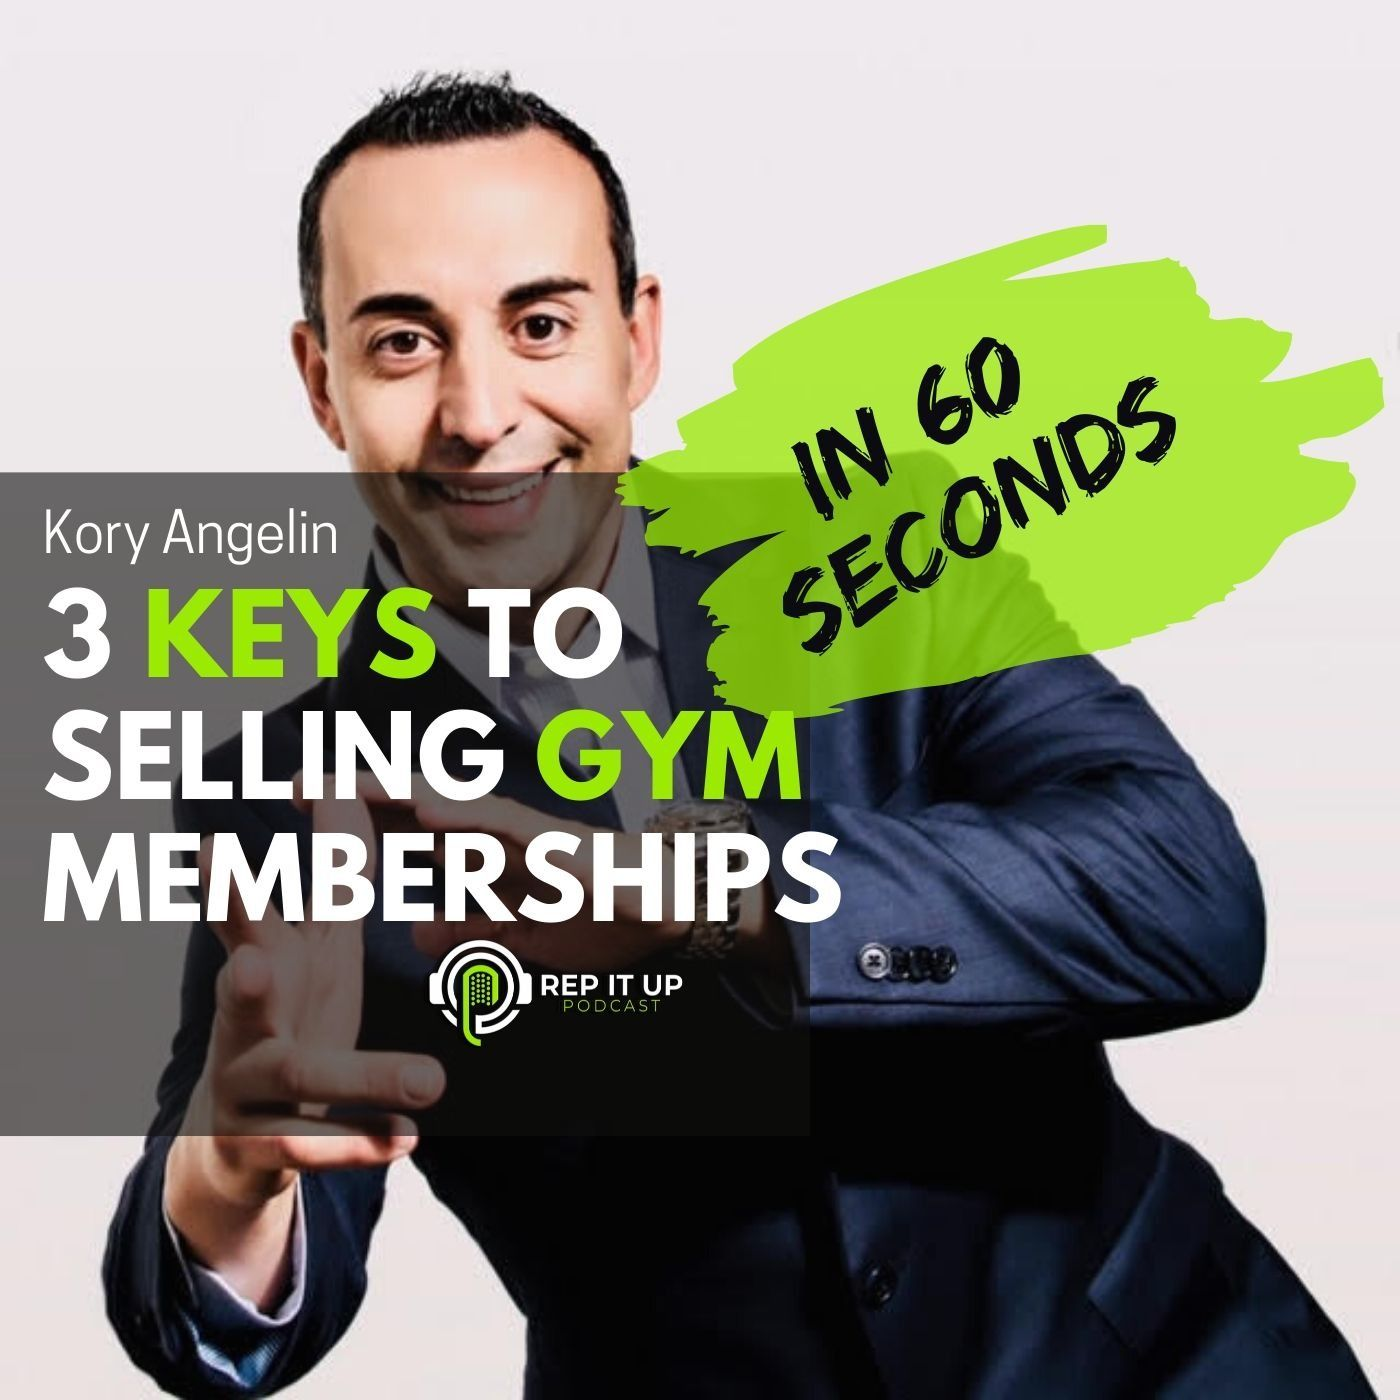 REP IT UP IN 60 SEC.: 3 KEY STRATEGIES TO SELLING GYM MEMBERSHIPS with Kory Angelin